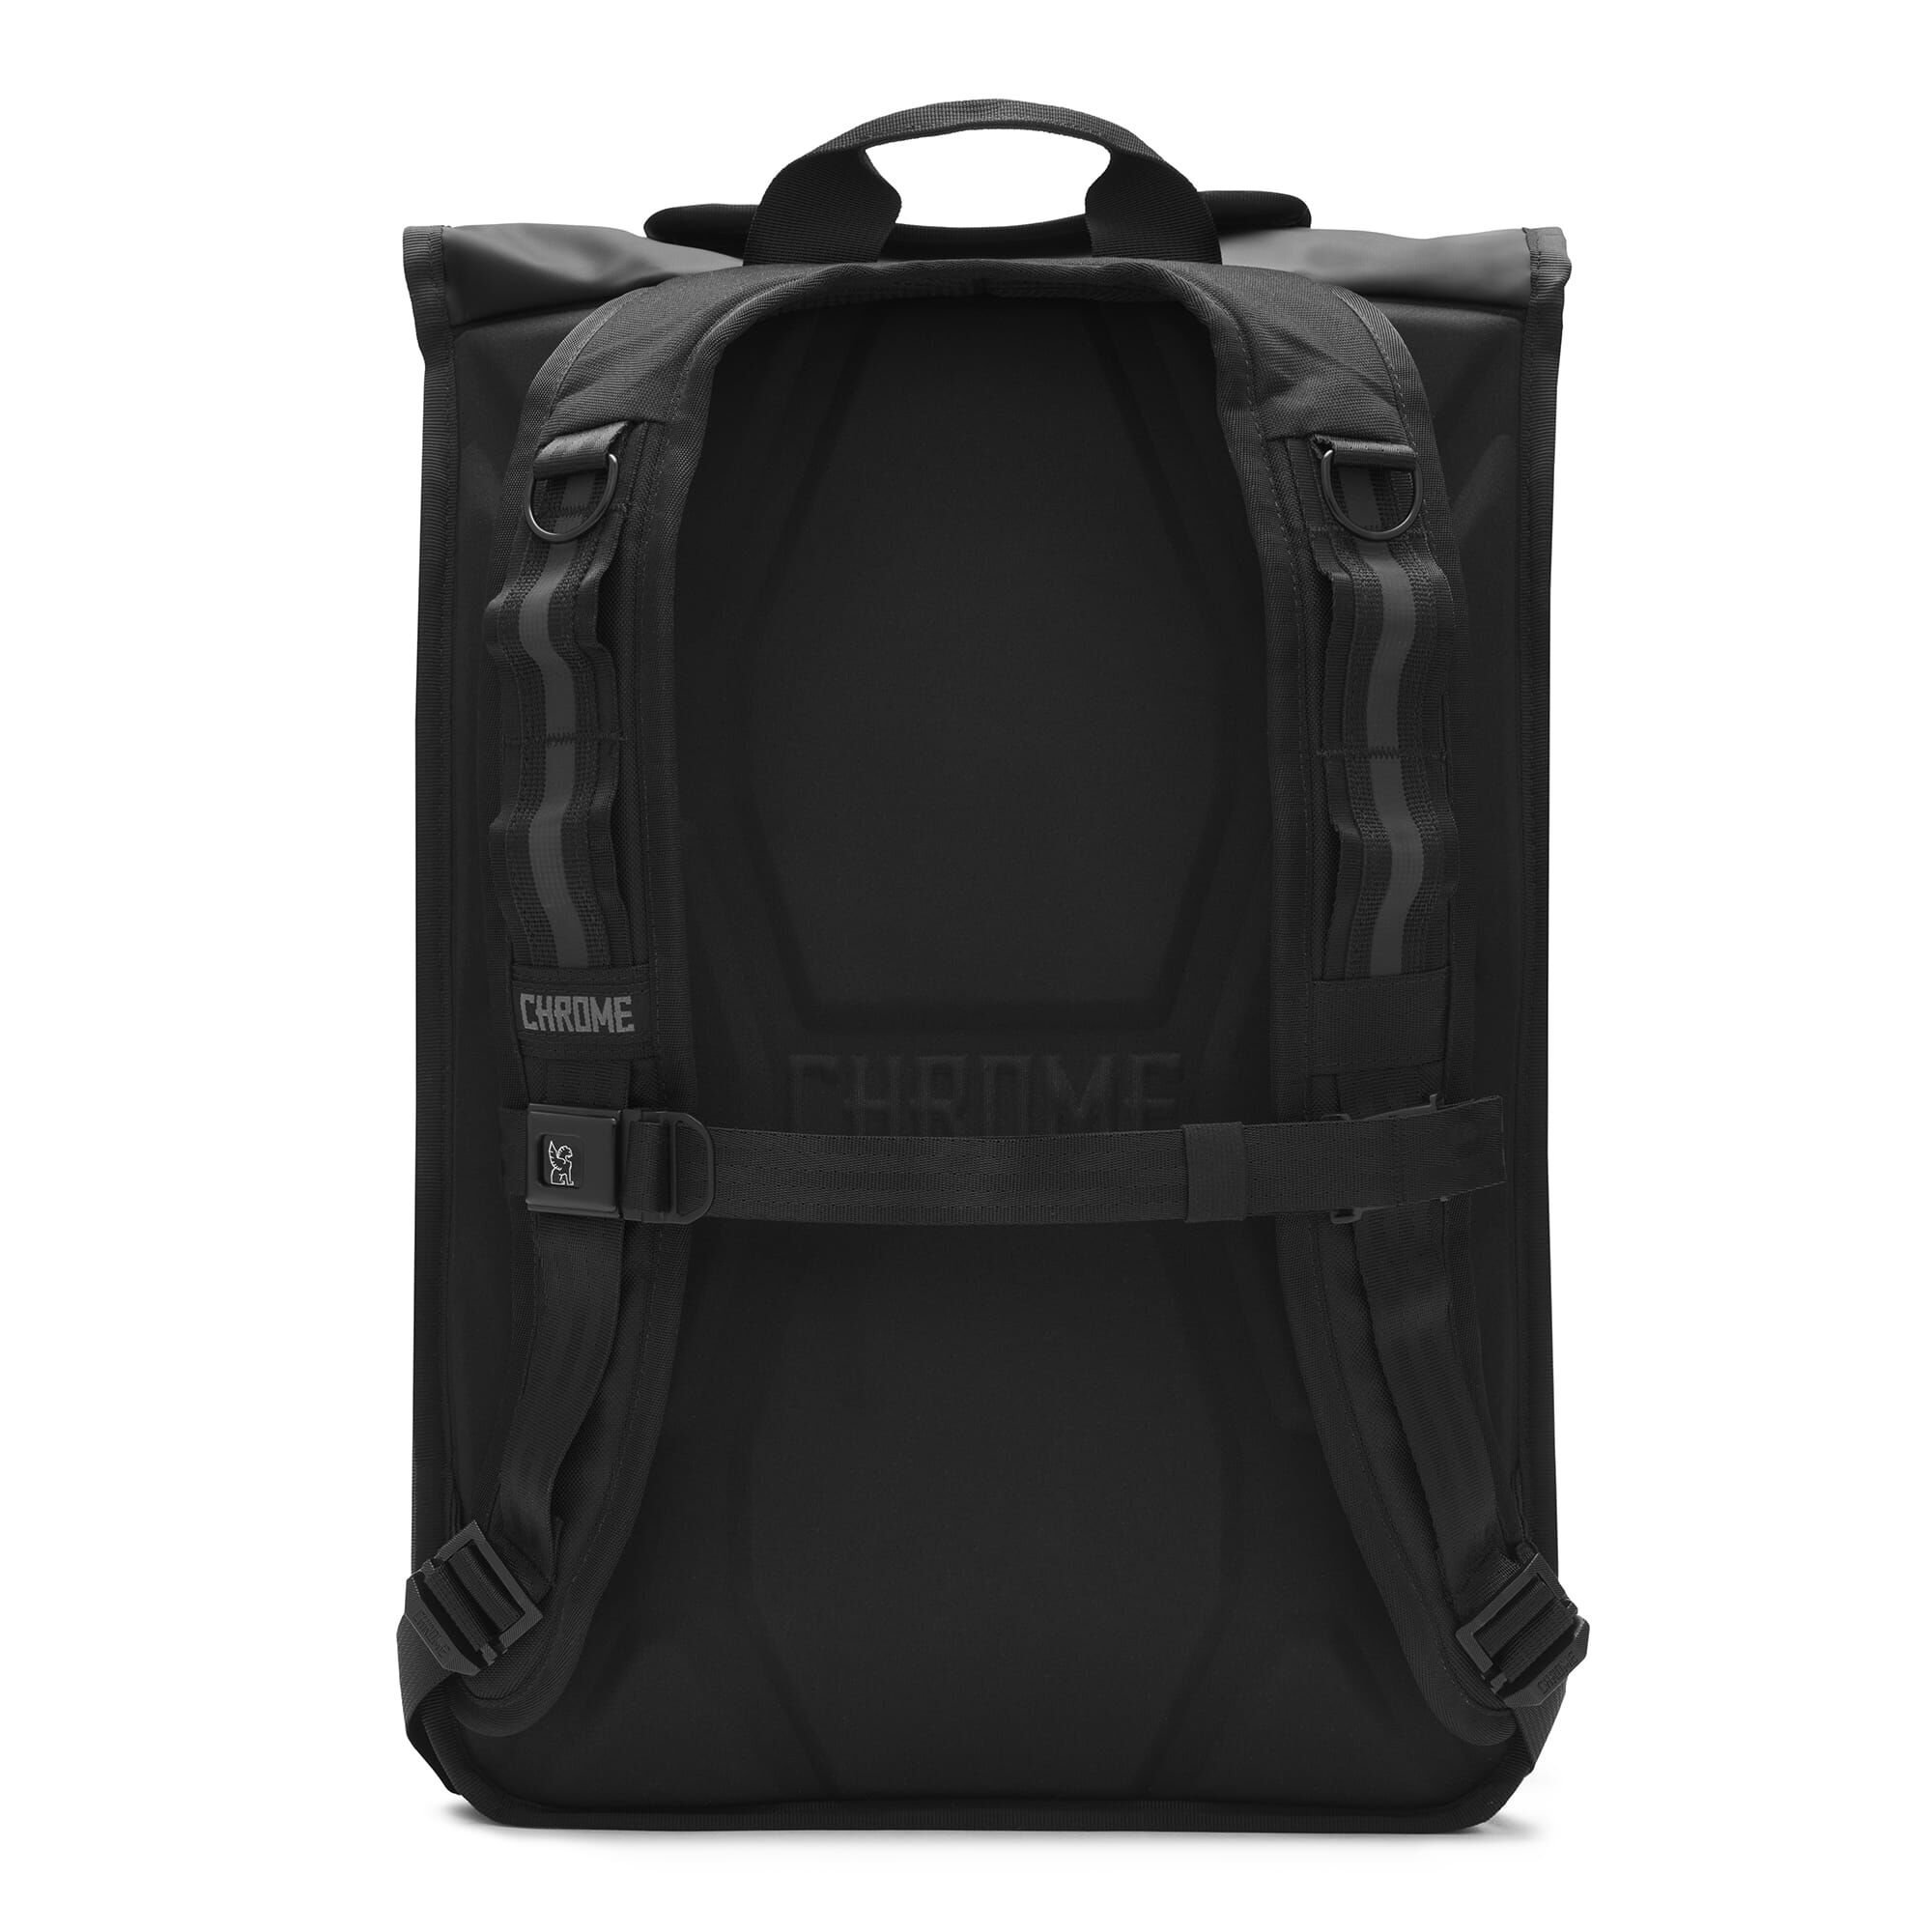 0d481e4596b273 Bravo 2.0 Backpack - Fits laptops up to 15